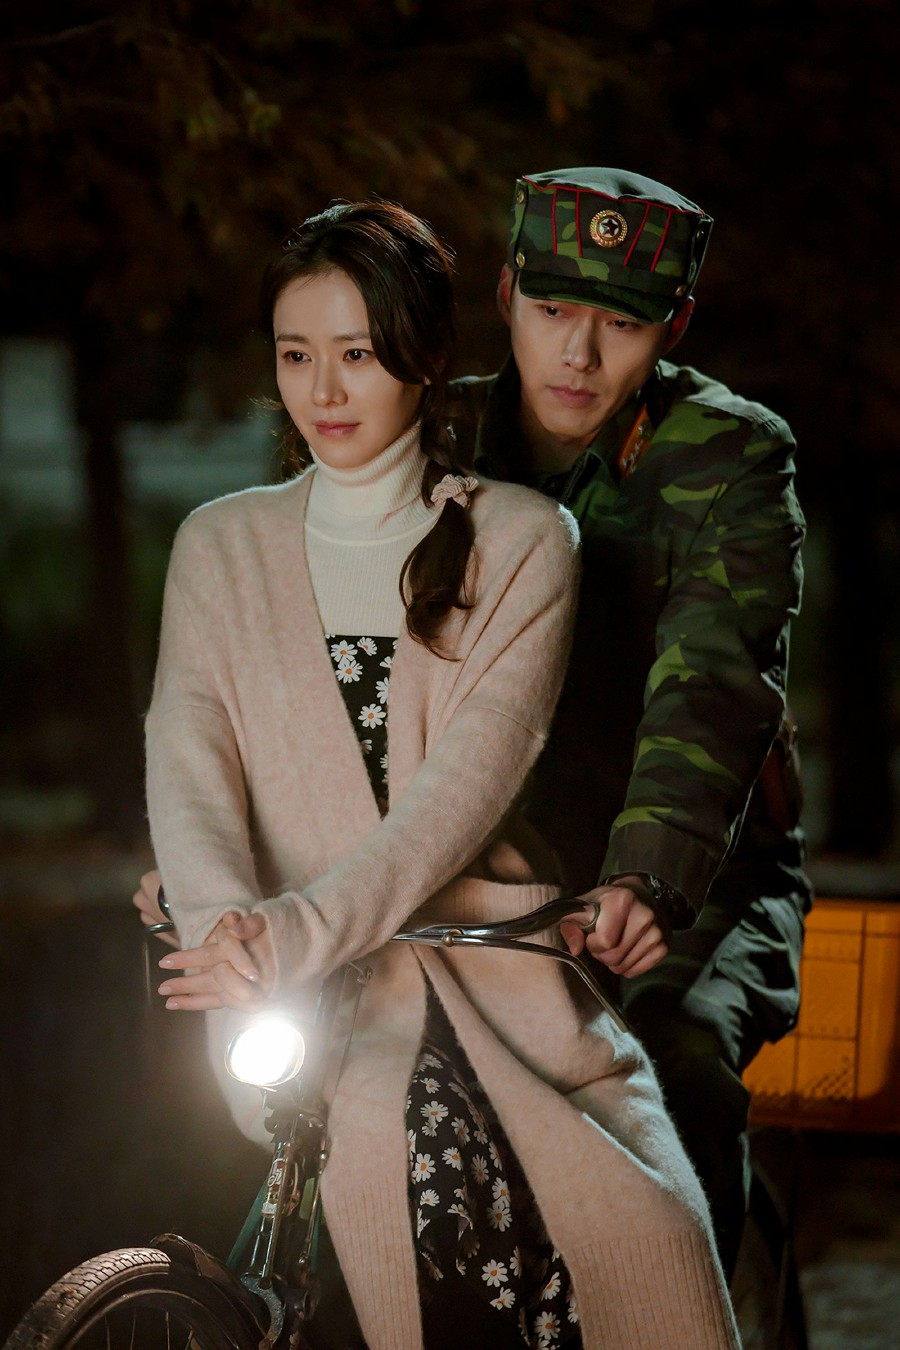 """This undated handout picture provided on February 13, 2020 by South Korean cable television network, tvN, in Seoul shows a scene from television drama series """"Crash Landing on You"""" starring actress Son Ye-jin and actor Hyun Bin. -AFP/tvN"""